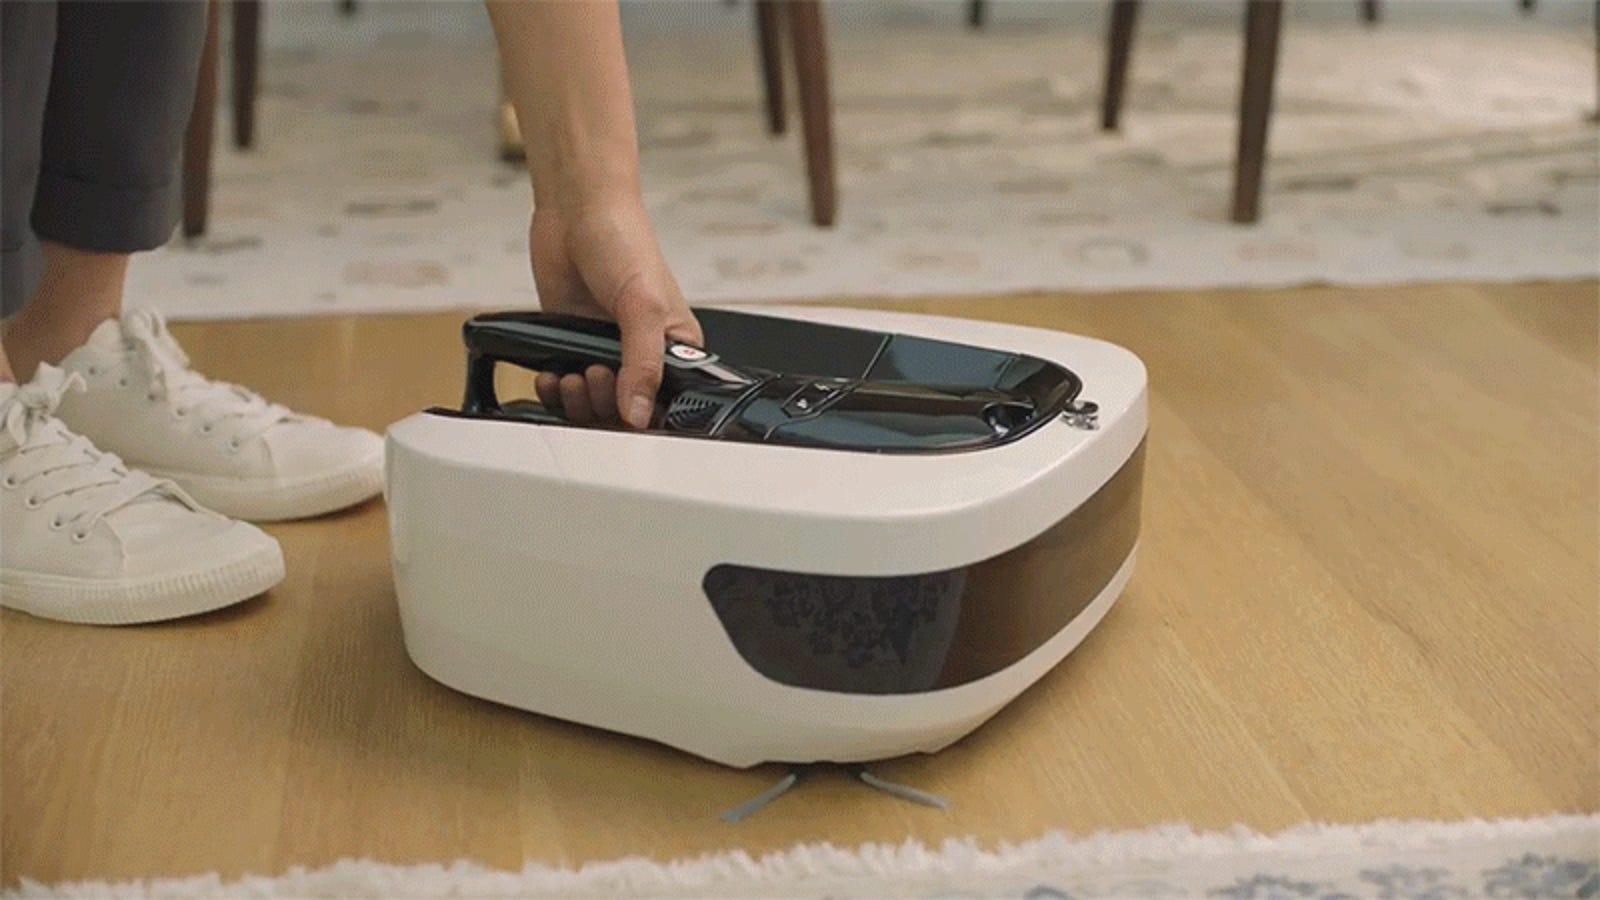 The Coral One Robovac's Has a Hand Held Cleaner Built In